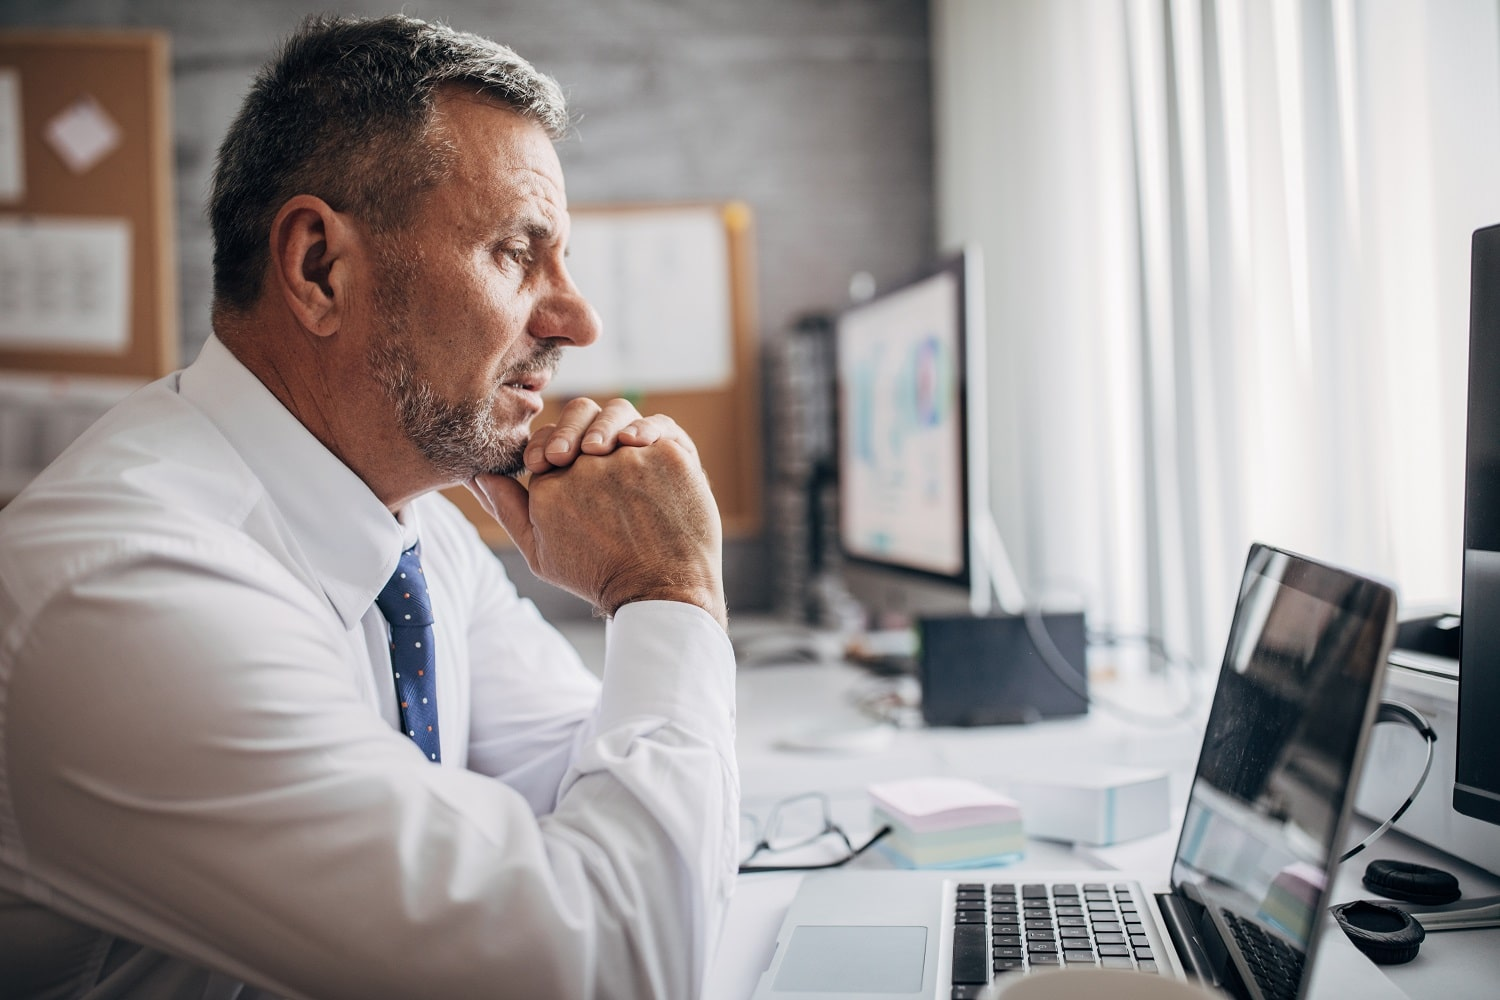 5 signs to invest in board meeting software - what to consider